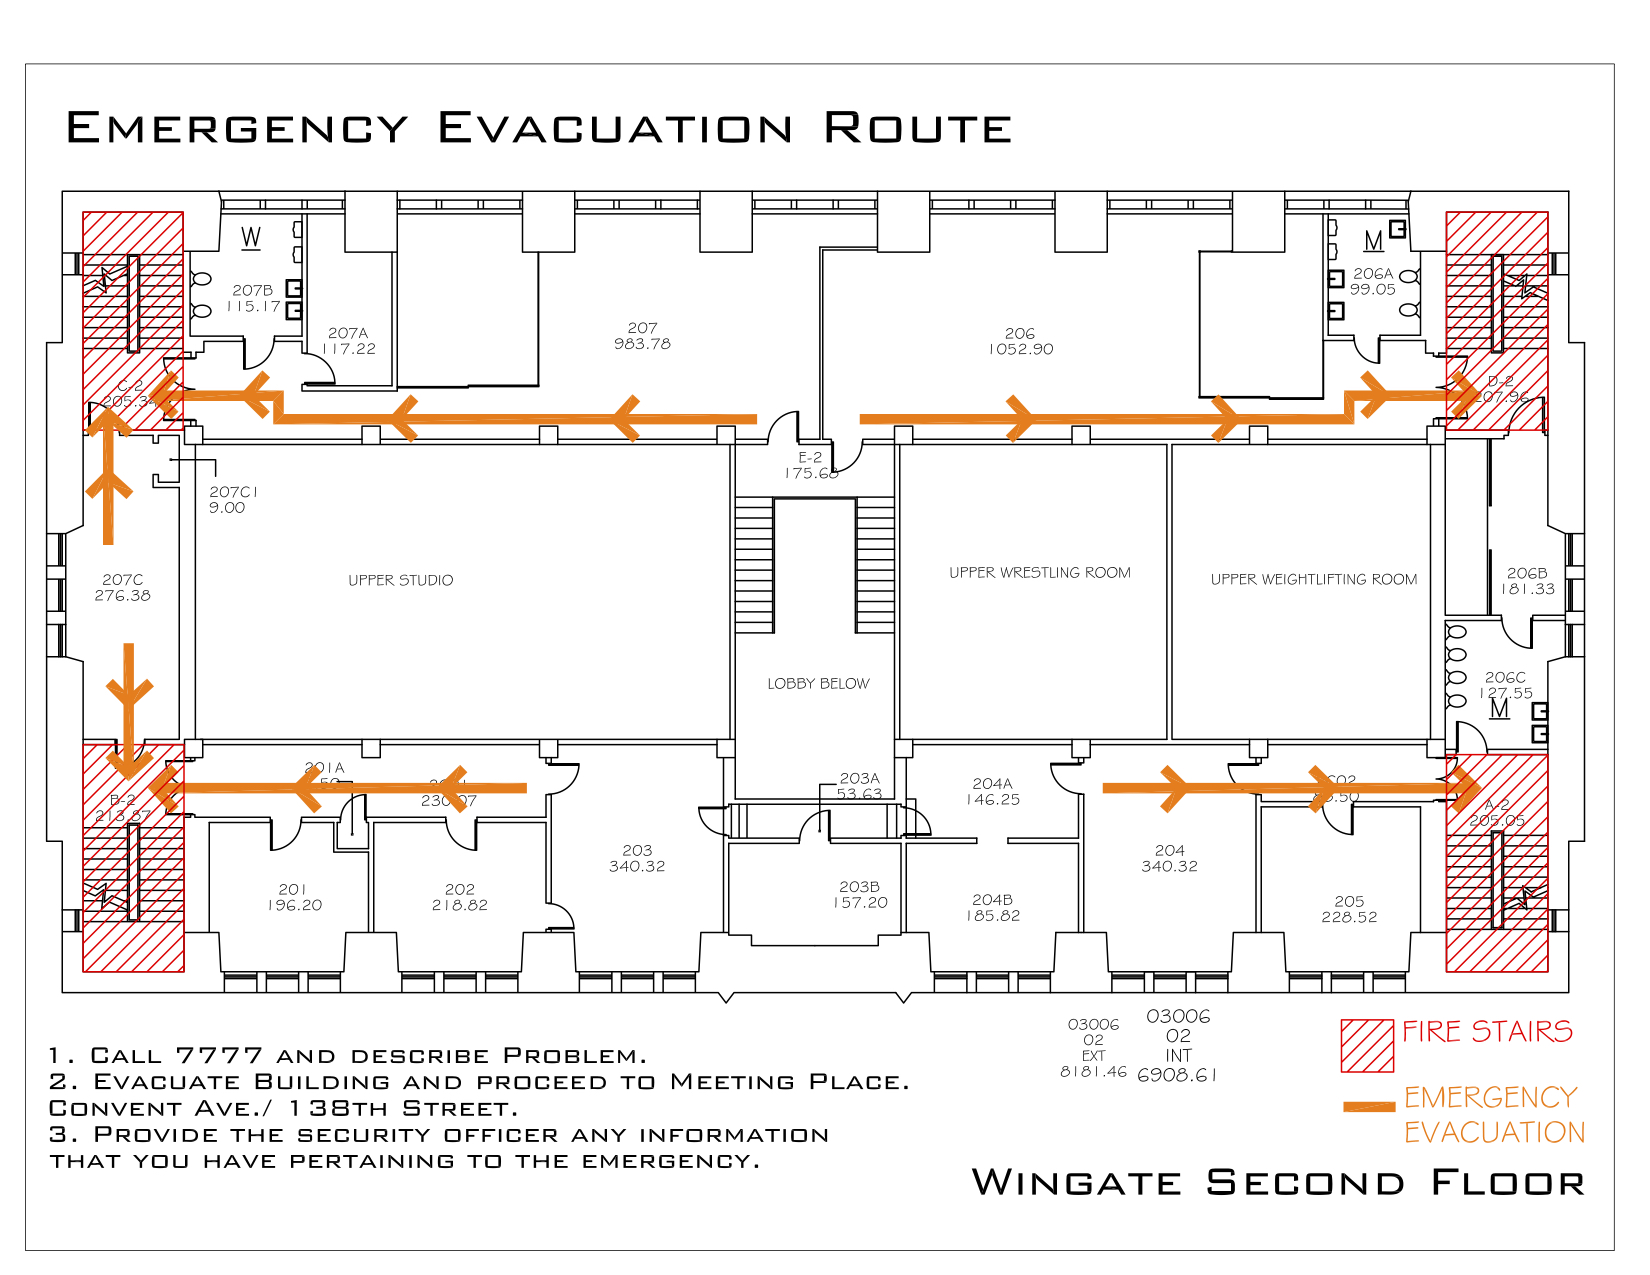 Wingate Hall - Evacuation Route 3